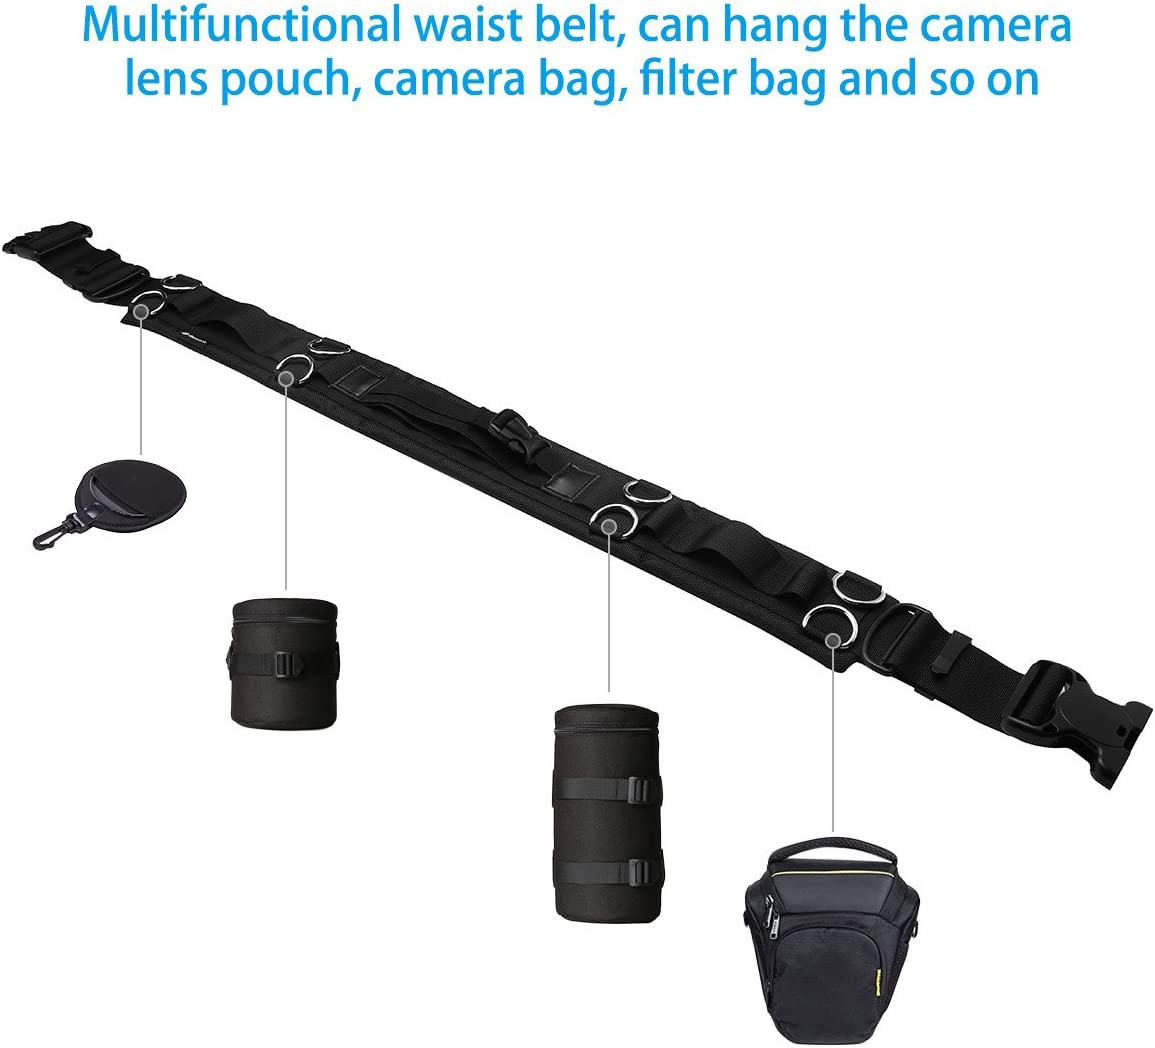 Powerextra Utility Outdoor Photography Adjustable Waist Strap Belt with D-rings for/Hanging Tripod Camera Case Lens Case Flash Case SD Card Pouch and Other Photography Accessories